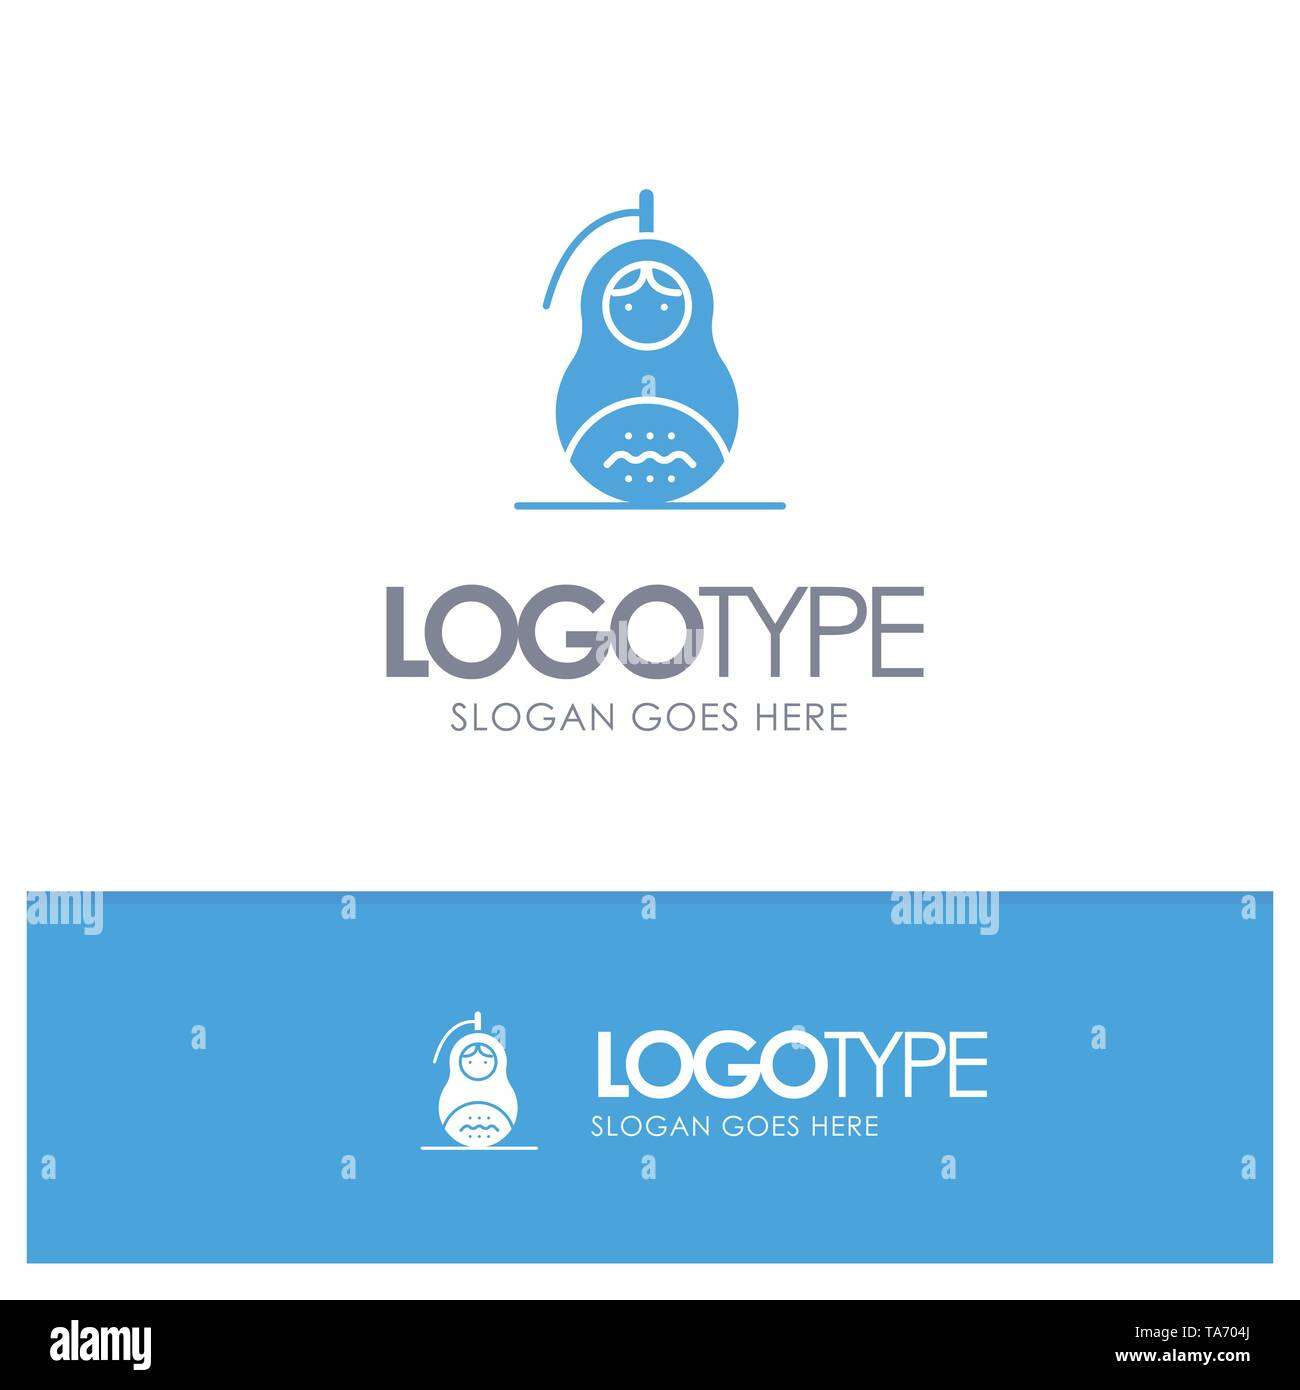 Fraud, Grenade, Matrioshka, Peace, Russia Blue Solid Logo with place for tagline - Stock Vector